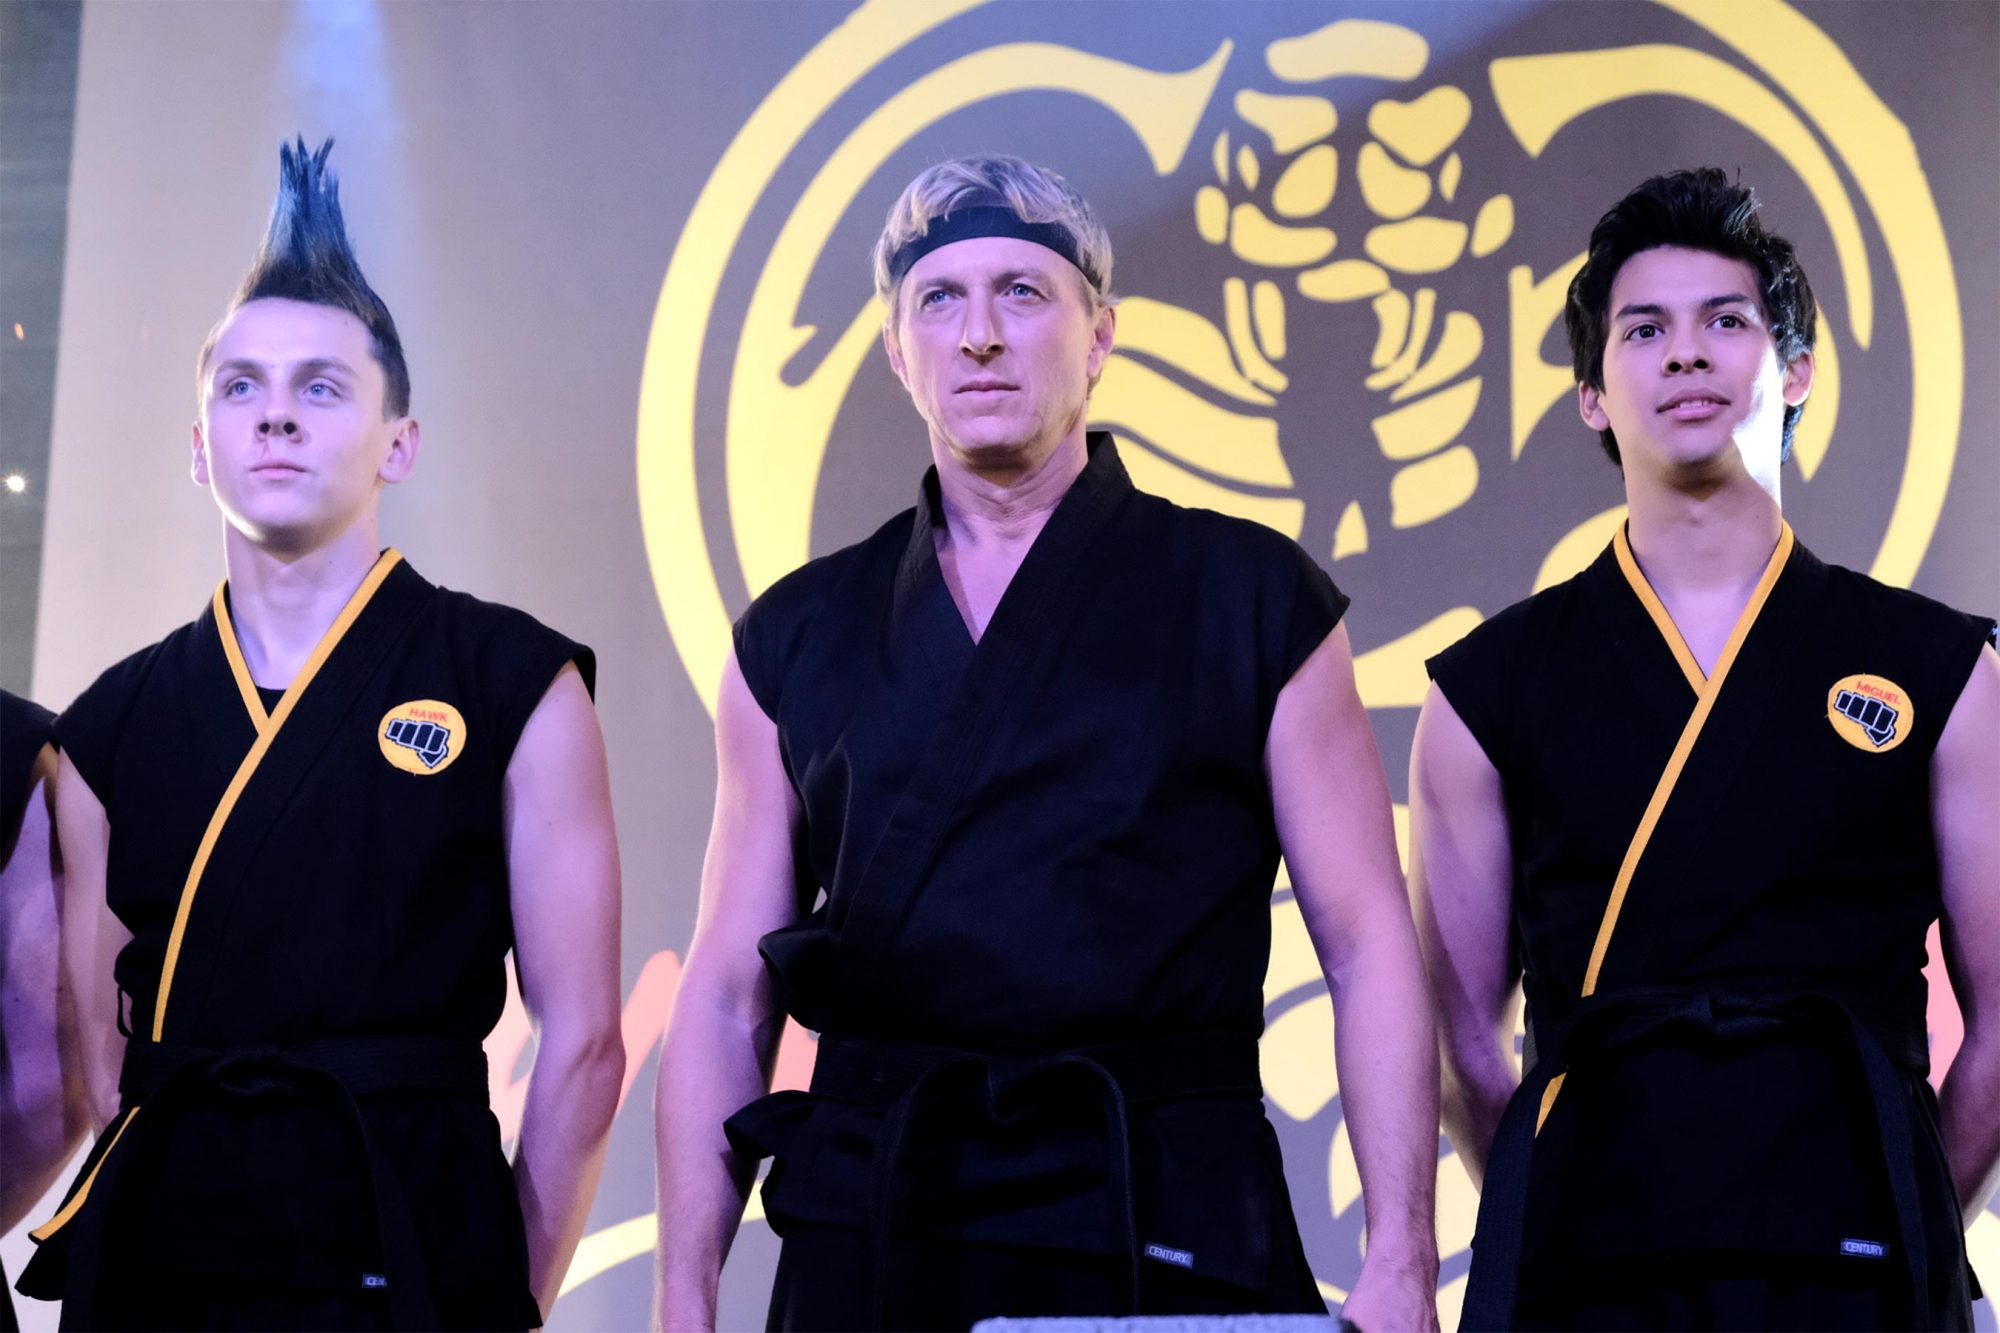 Cobra Kai - Season 2 - Episode 203 CR: Guy D'Alema/SONY